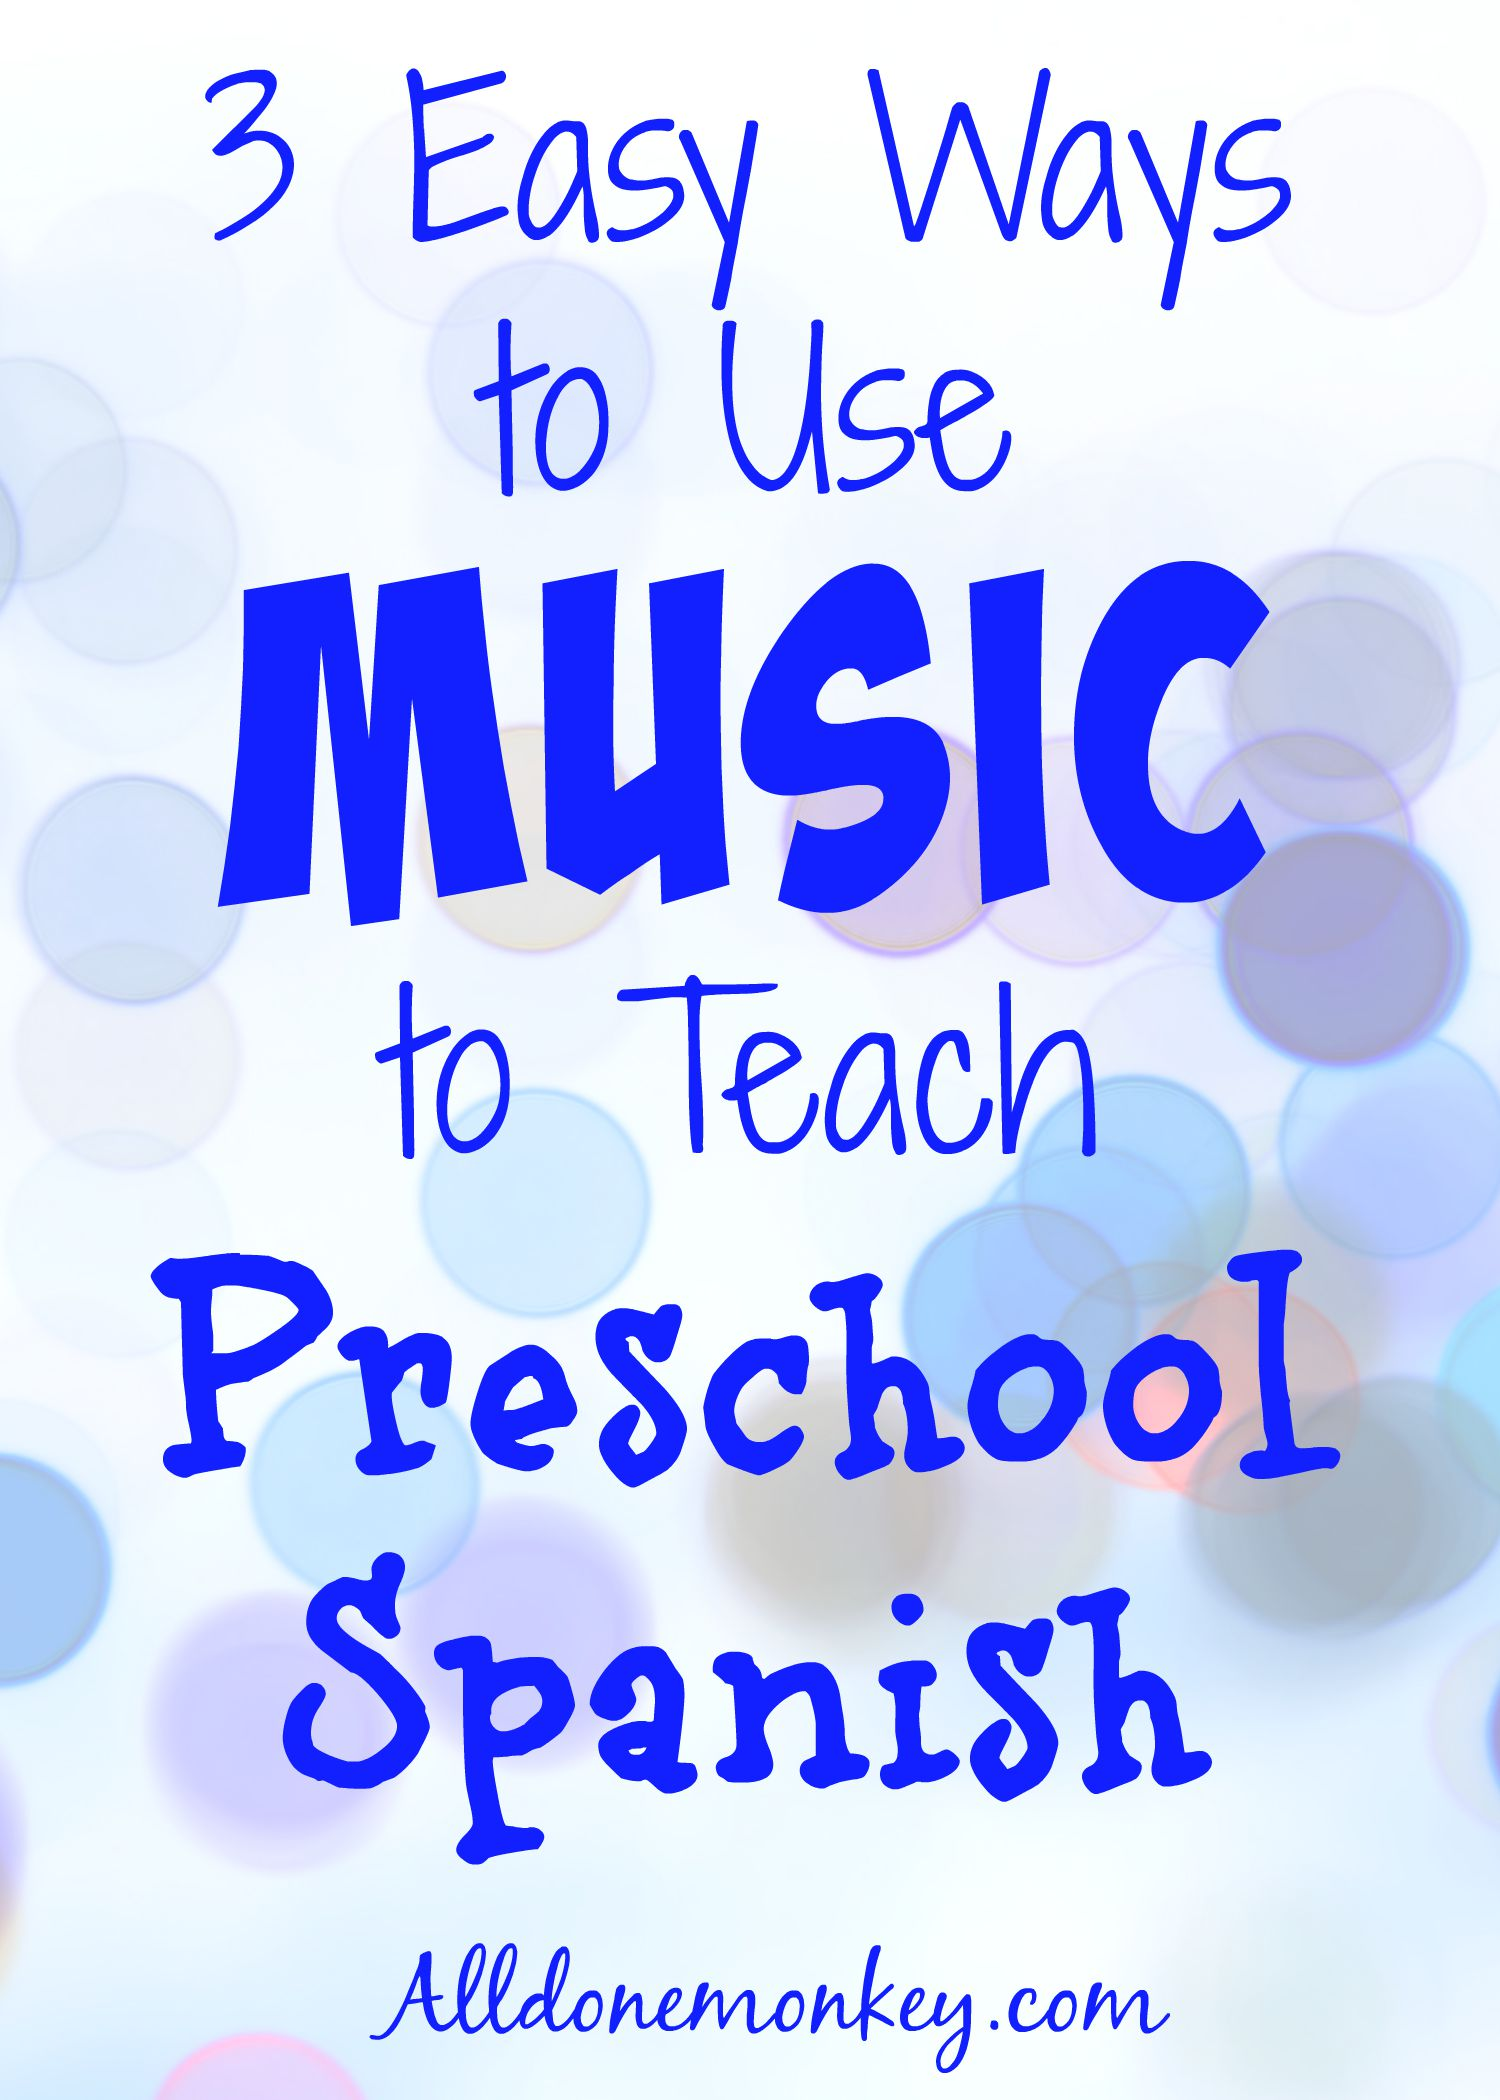 Three Easy Ways to Use Music to Teach Preschool Spanish | Alldonemonkey.com